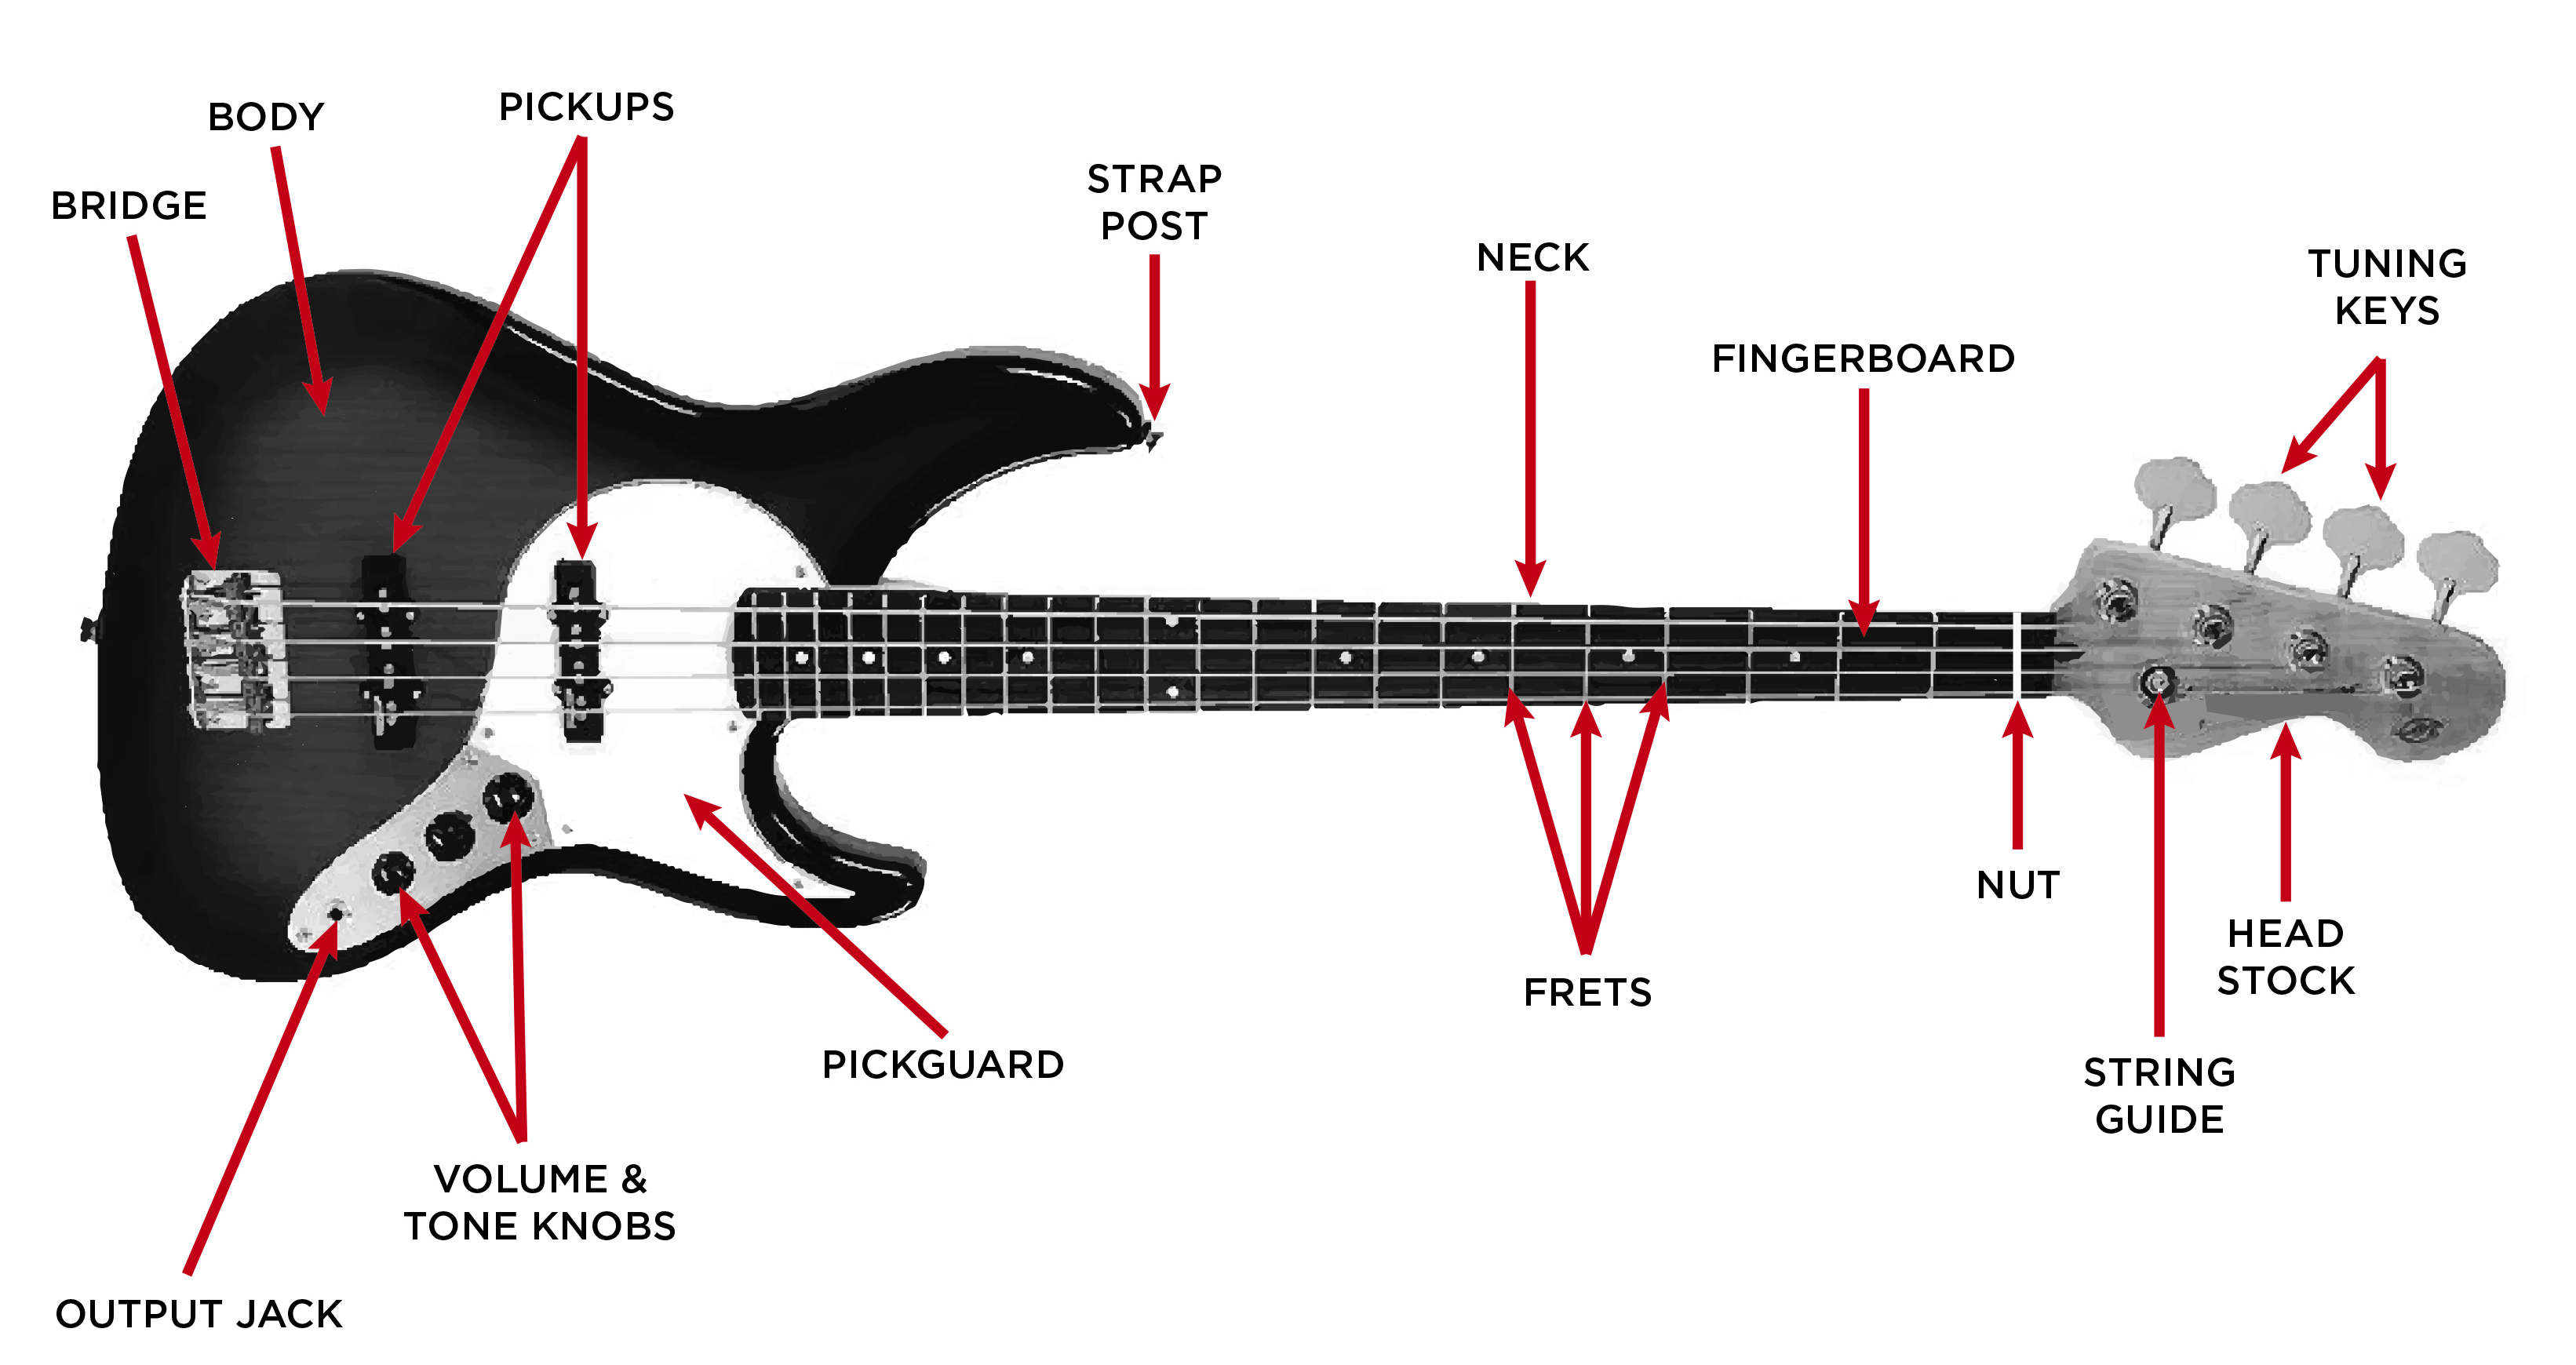 Squier Affinity Jazz Bass Wiring Diagram | Manual E-Books - Fender P Bass Wiring Diagram